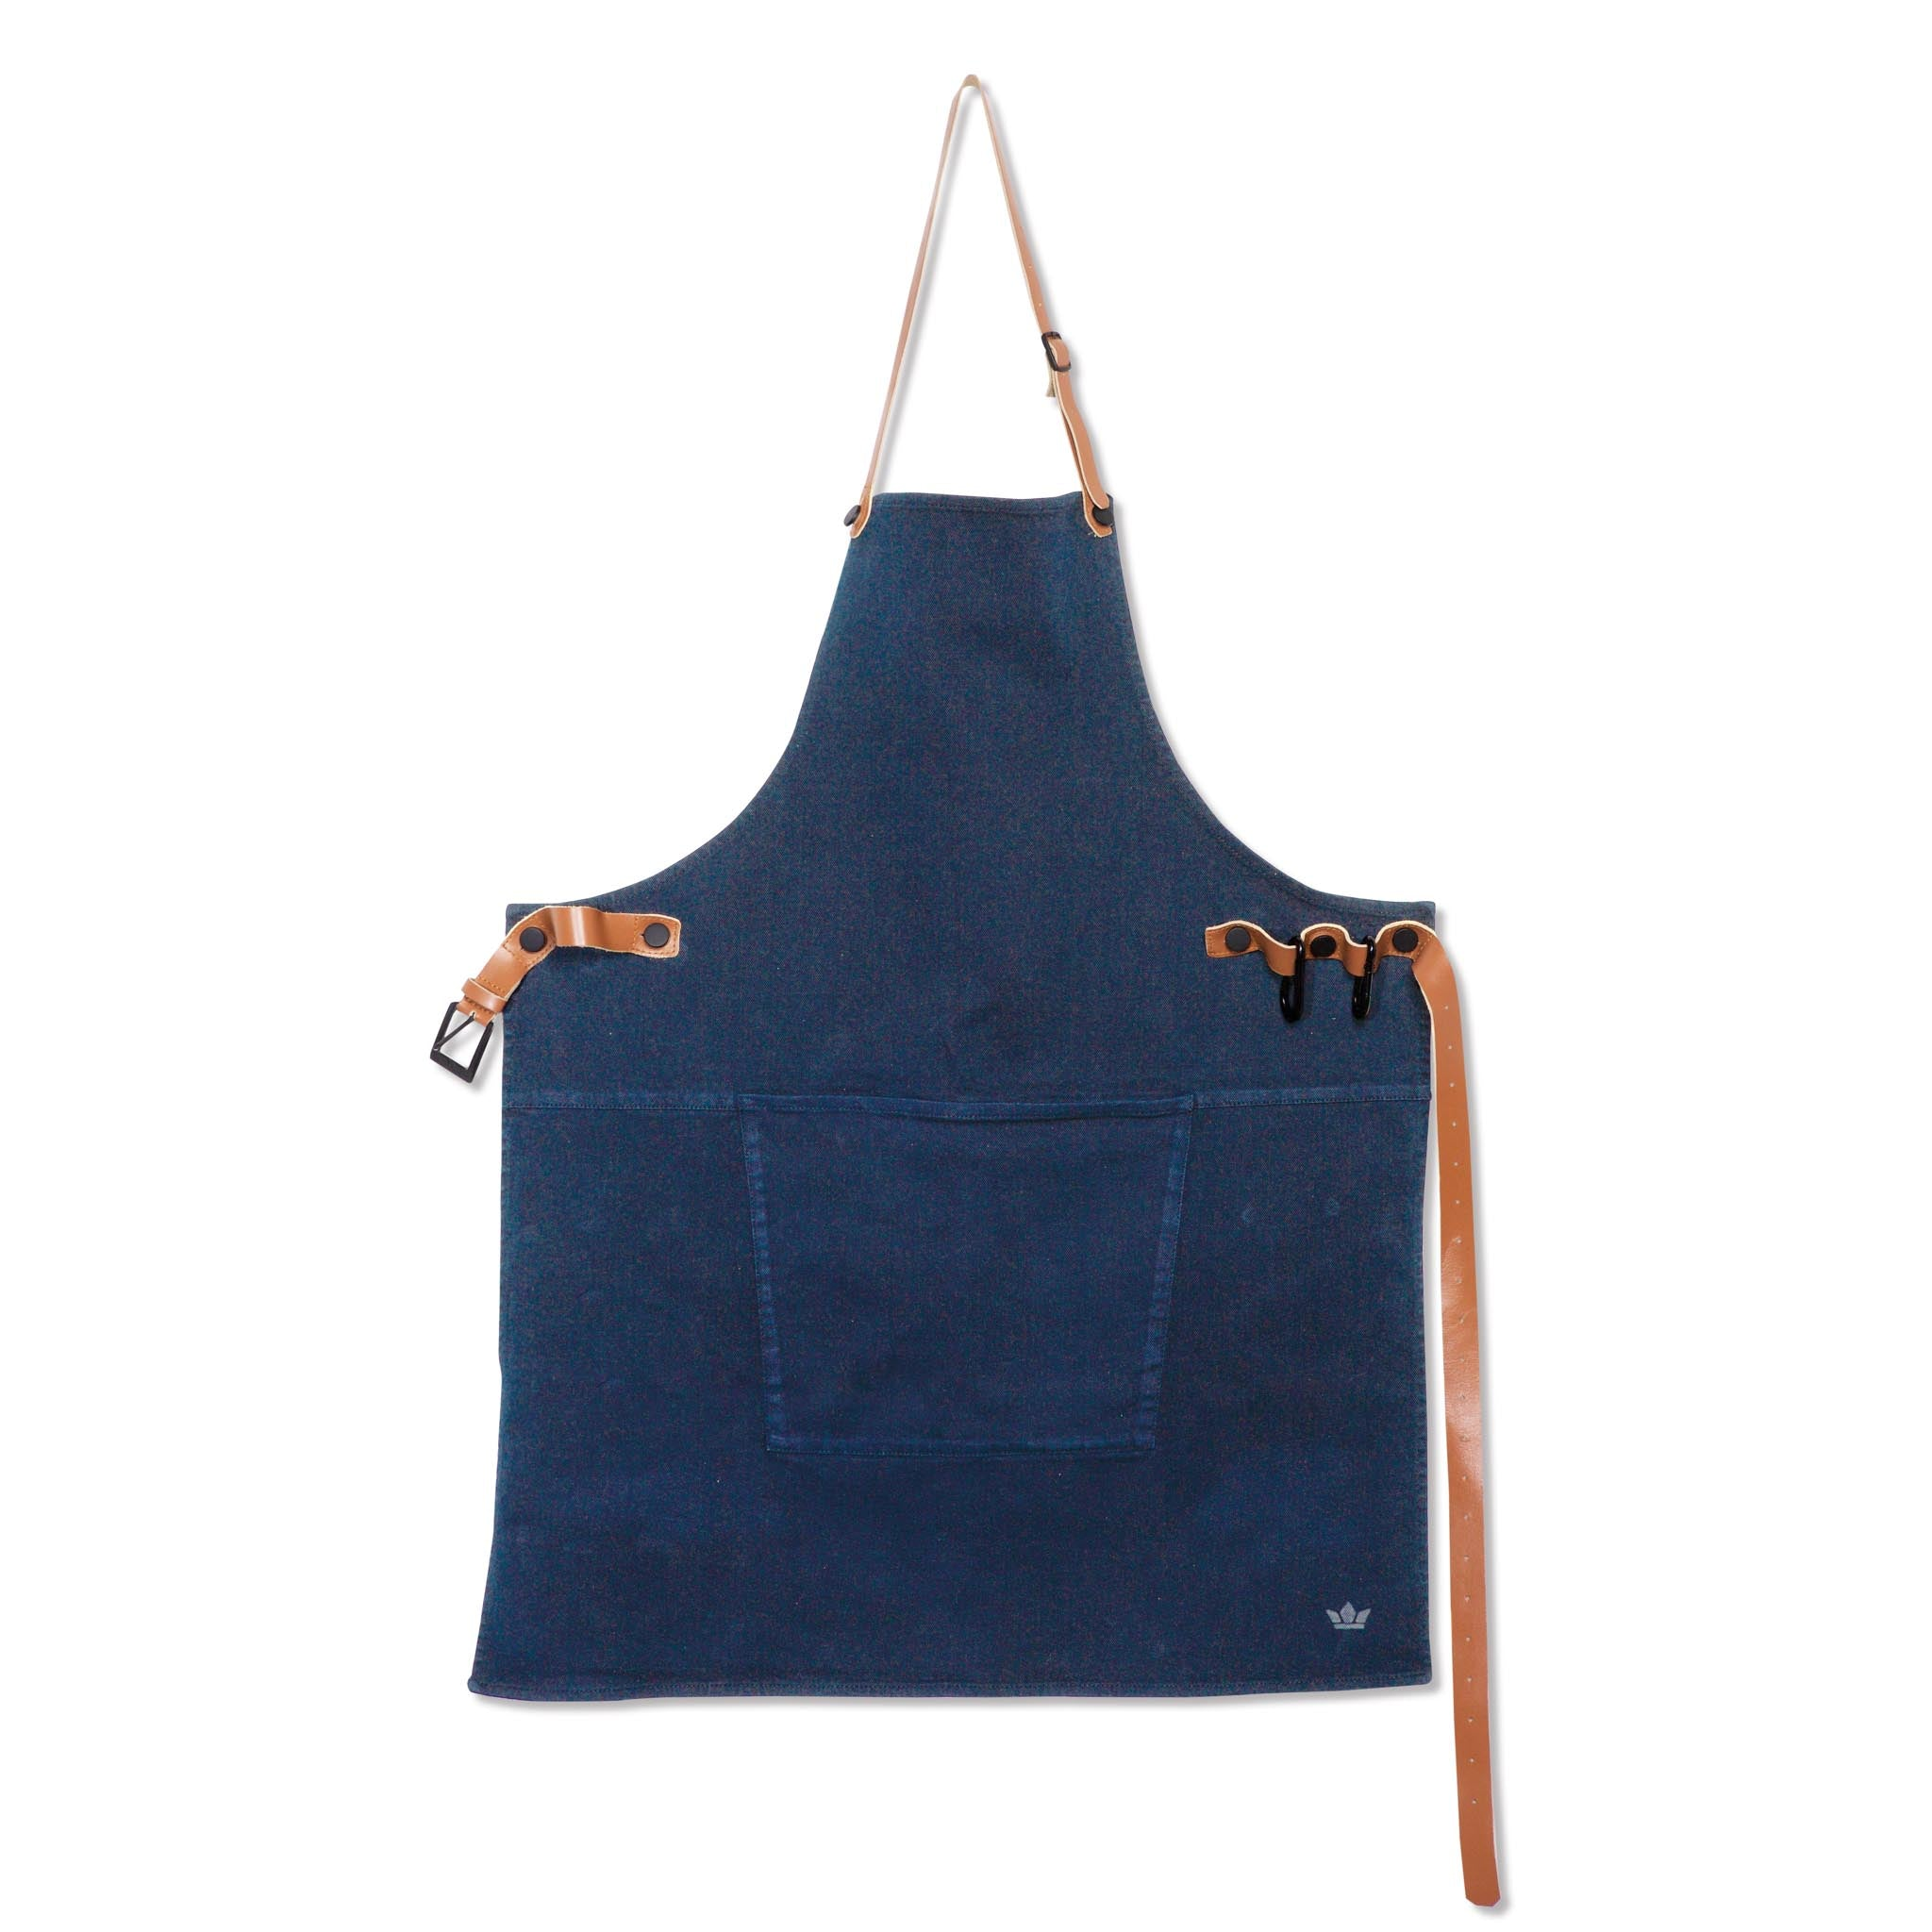 Dutchdeluxes Canvas BBQ Apron in Dark Blue